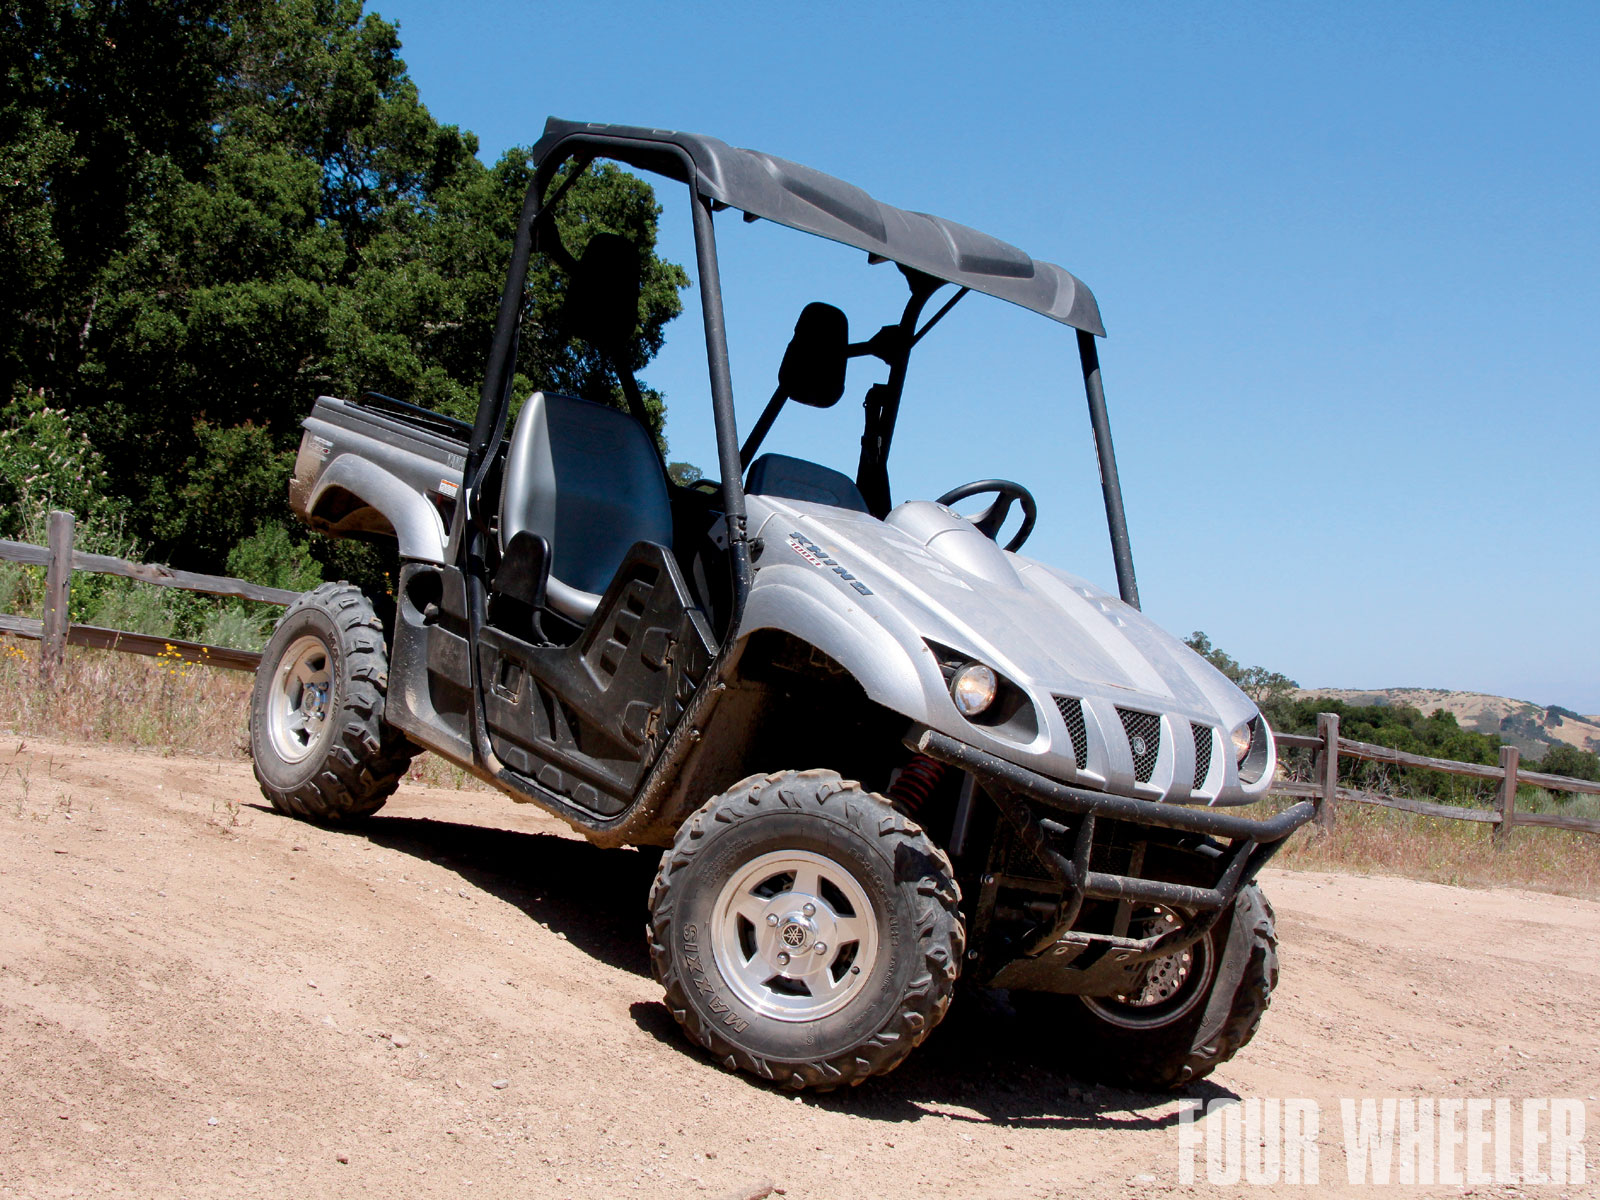 129 1012 02 o+129 1012 december 2010 bed toys yamaha rhino 700 fi sport+front side view